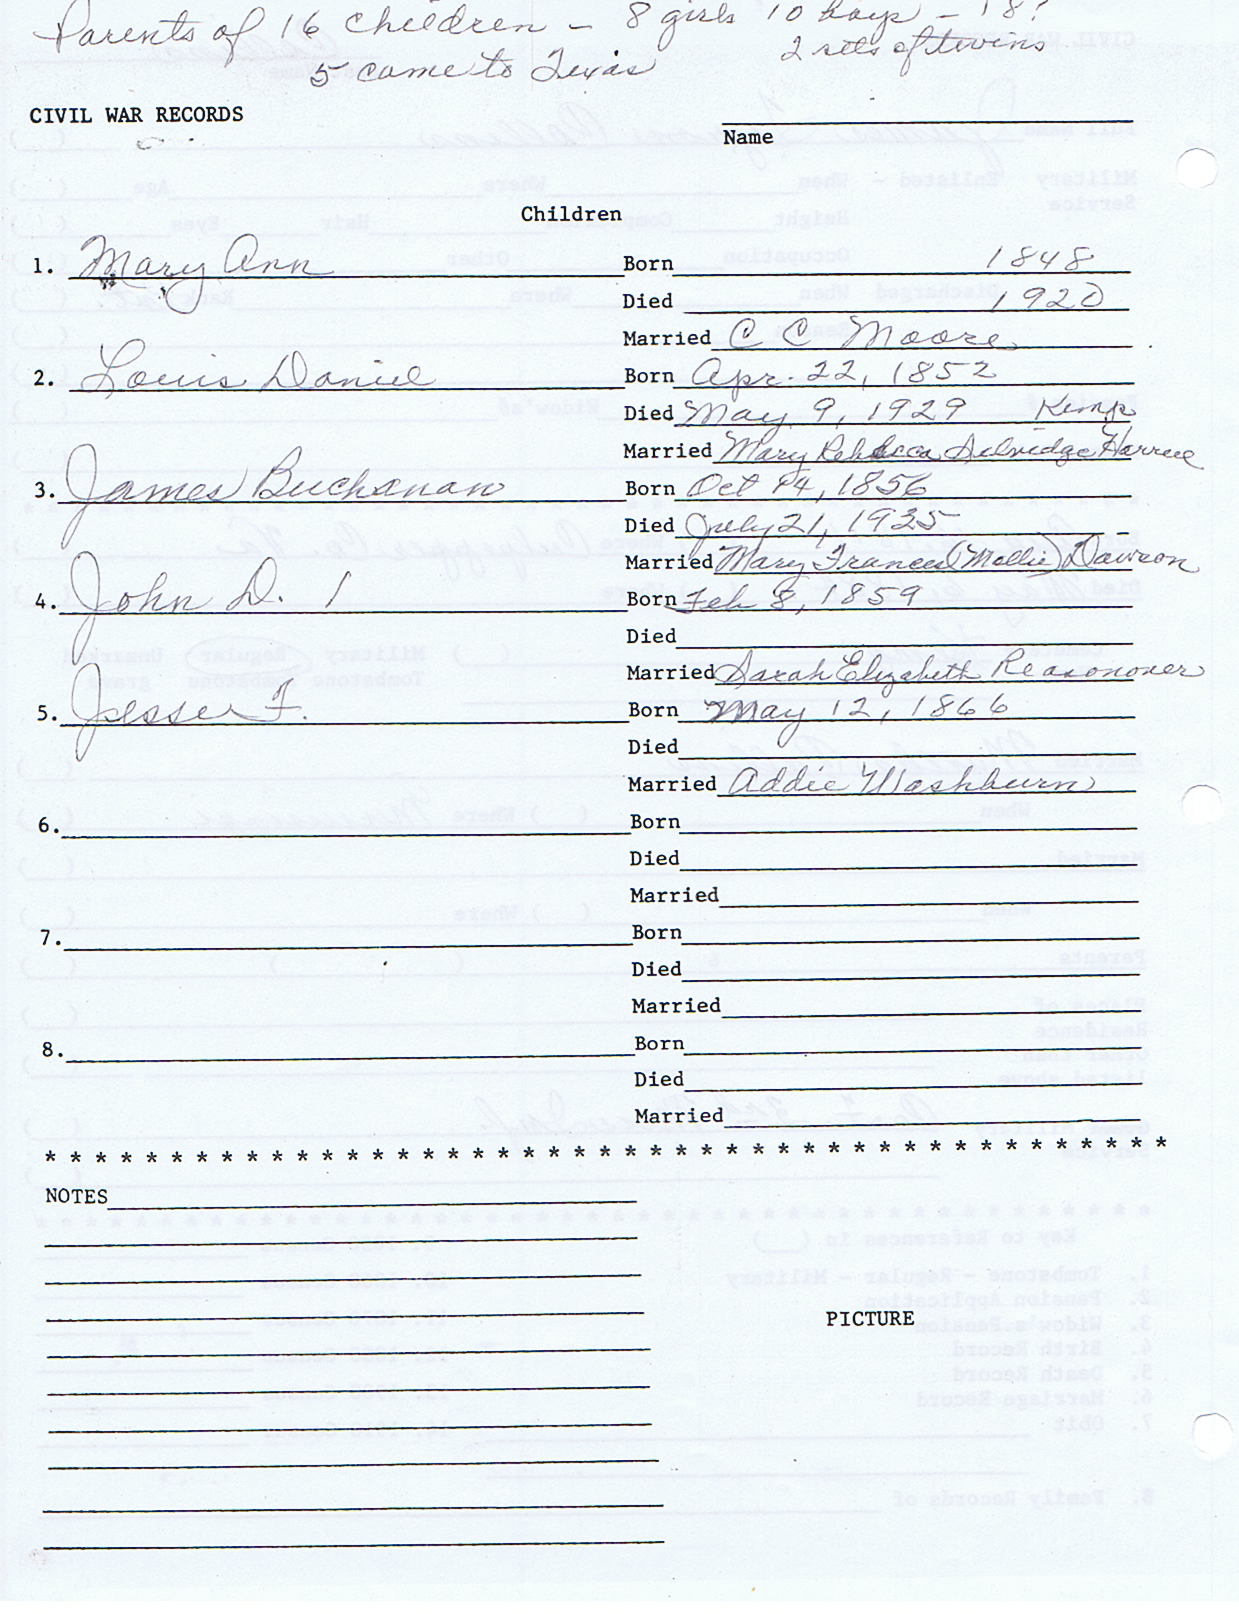 collins-kaufman_civil_war_records-3509a